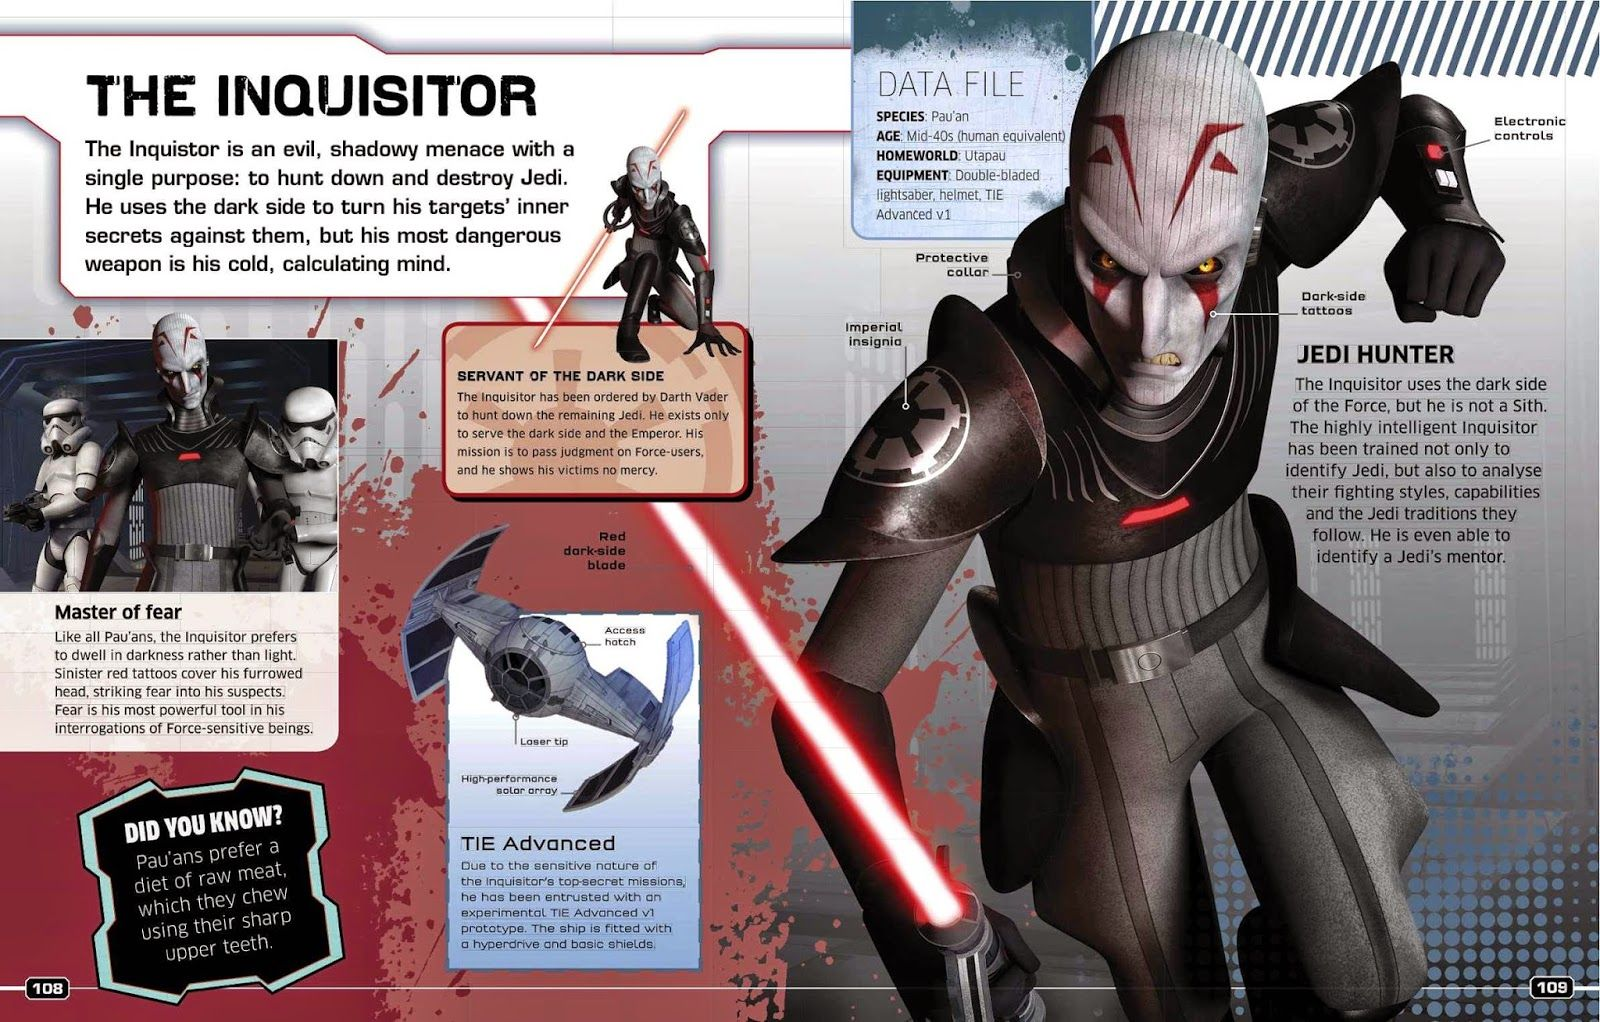 star wars rebels season 1 inquisitor - Google Search